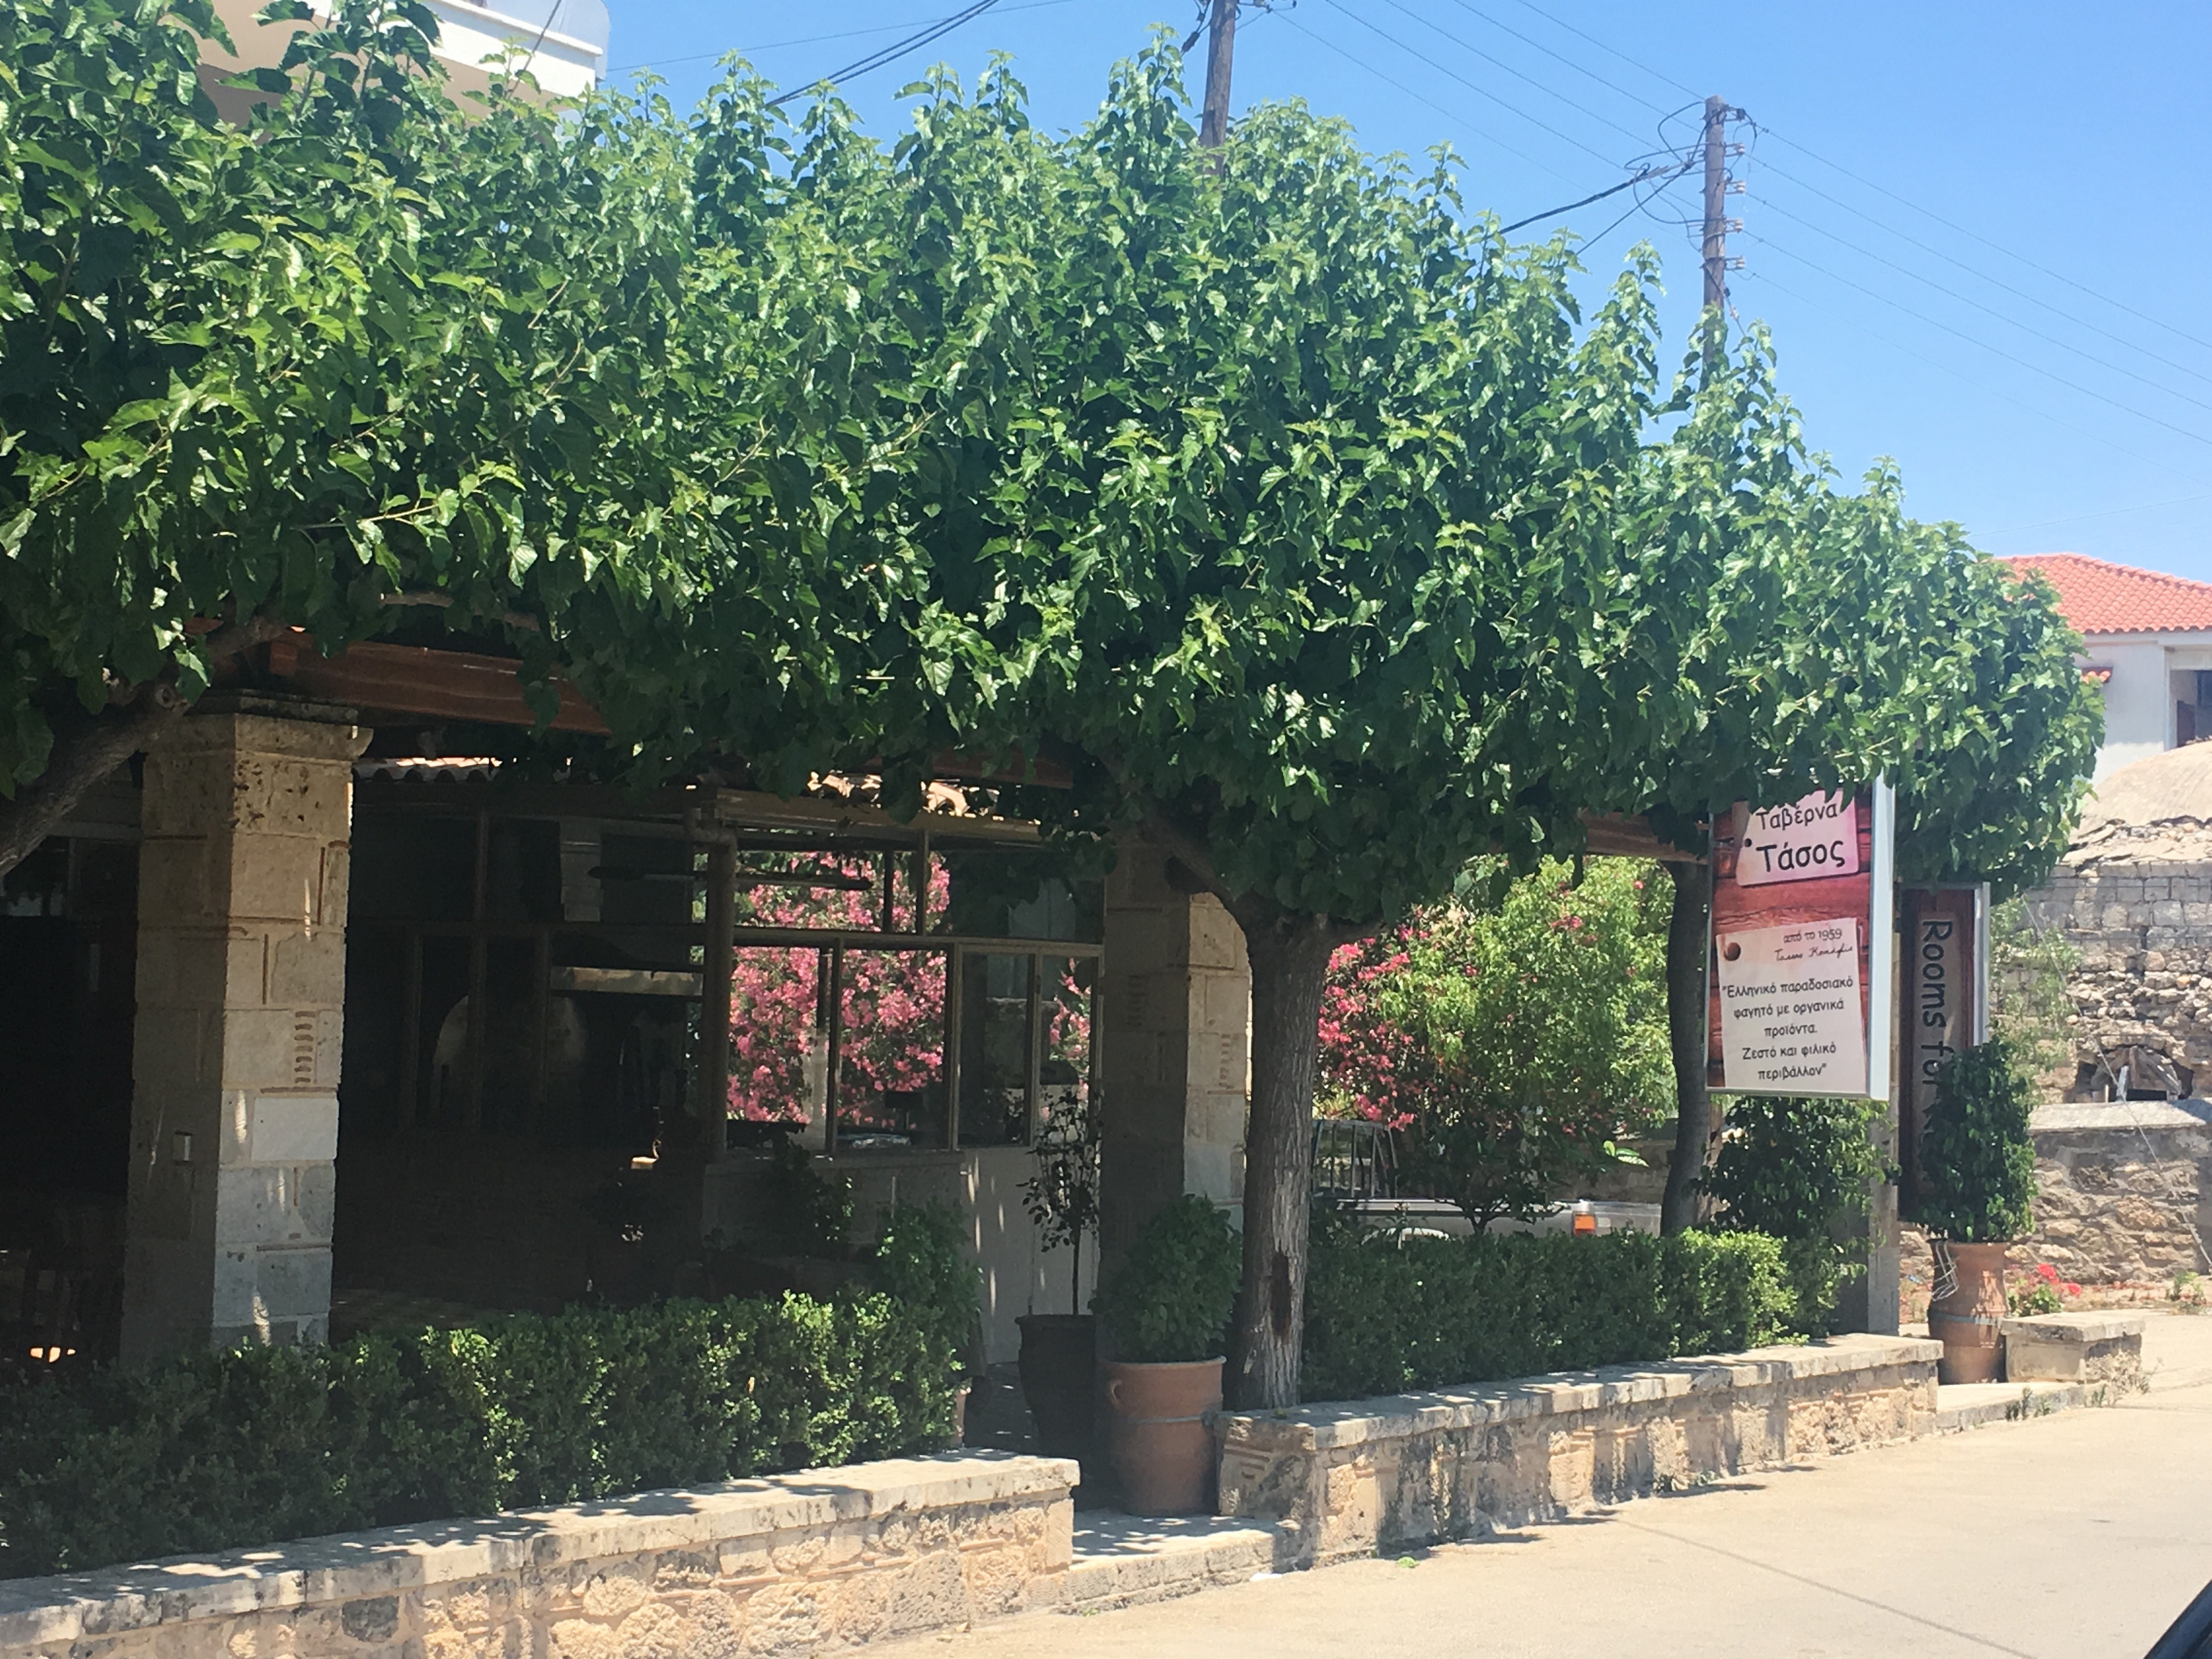 A street view of the taverna that might or might not be Tasso's